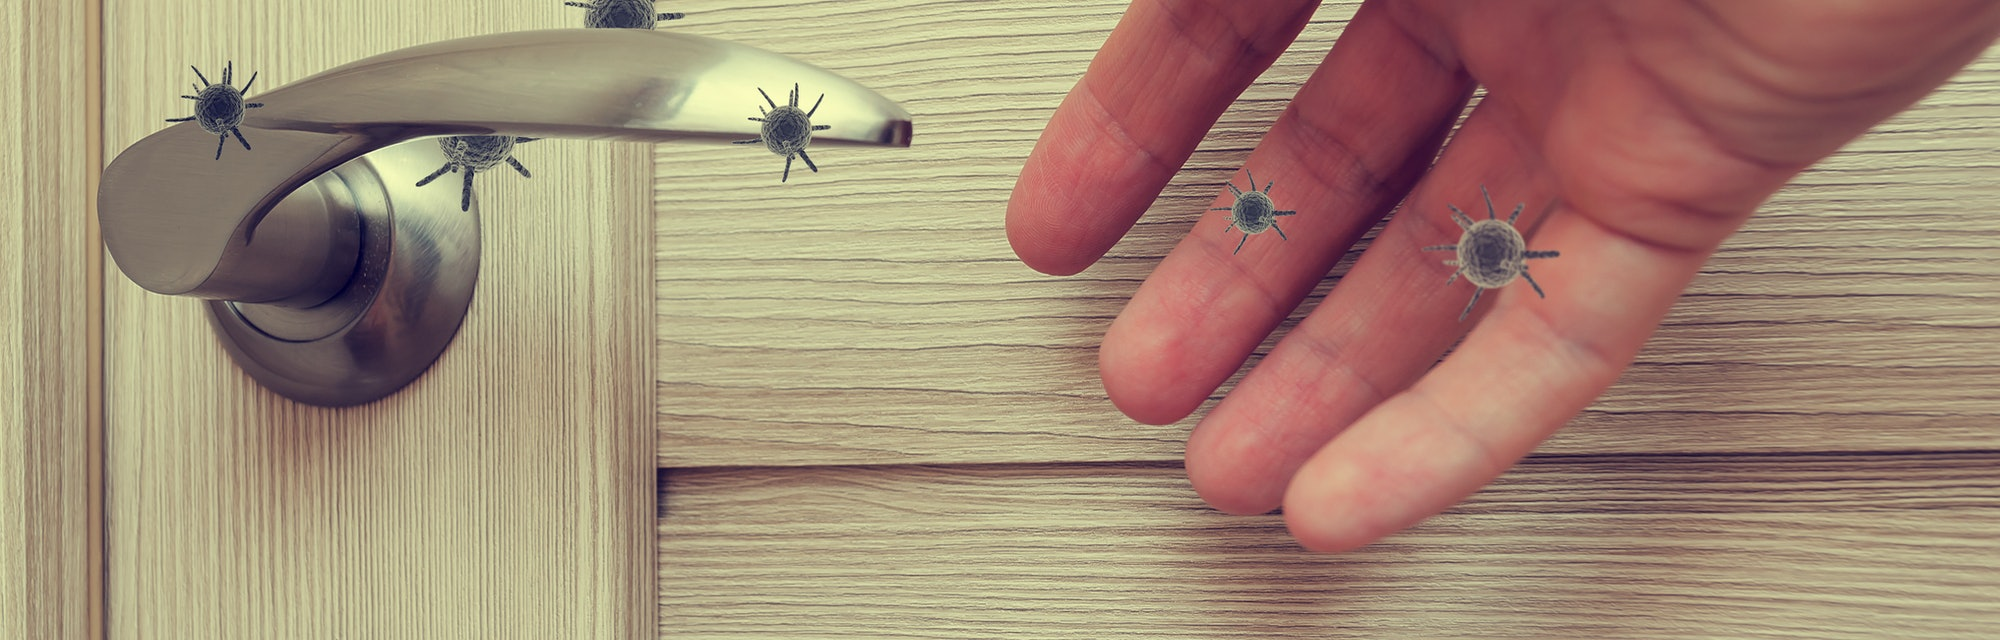 human life through which germs and viruses spread, door handle in an apartment in a room or house wi...